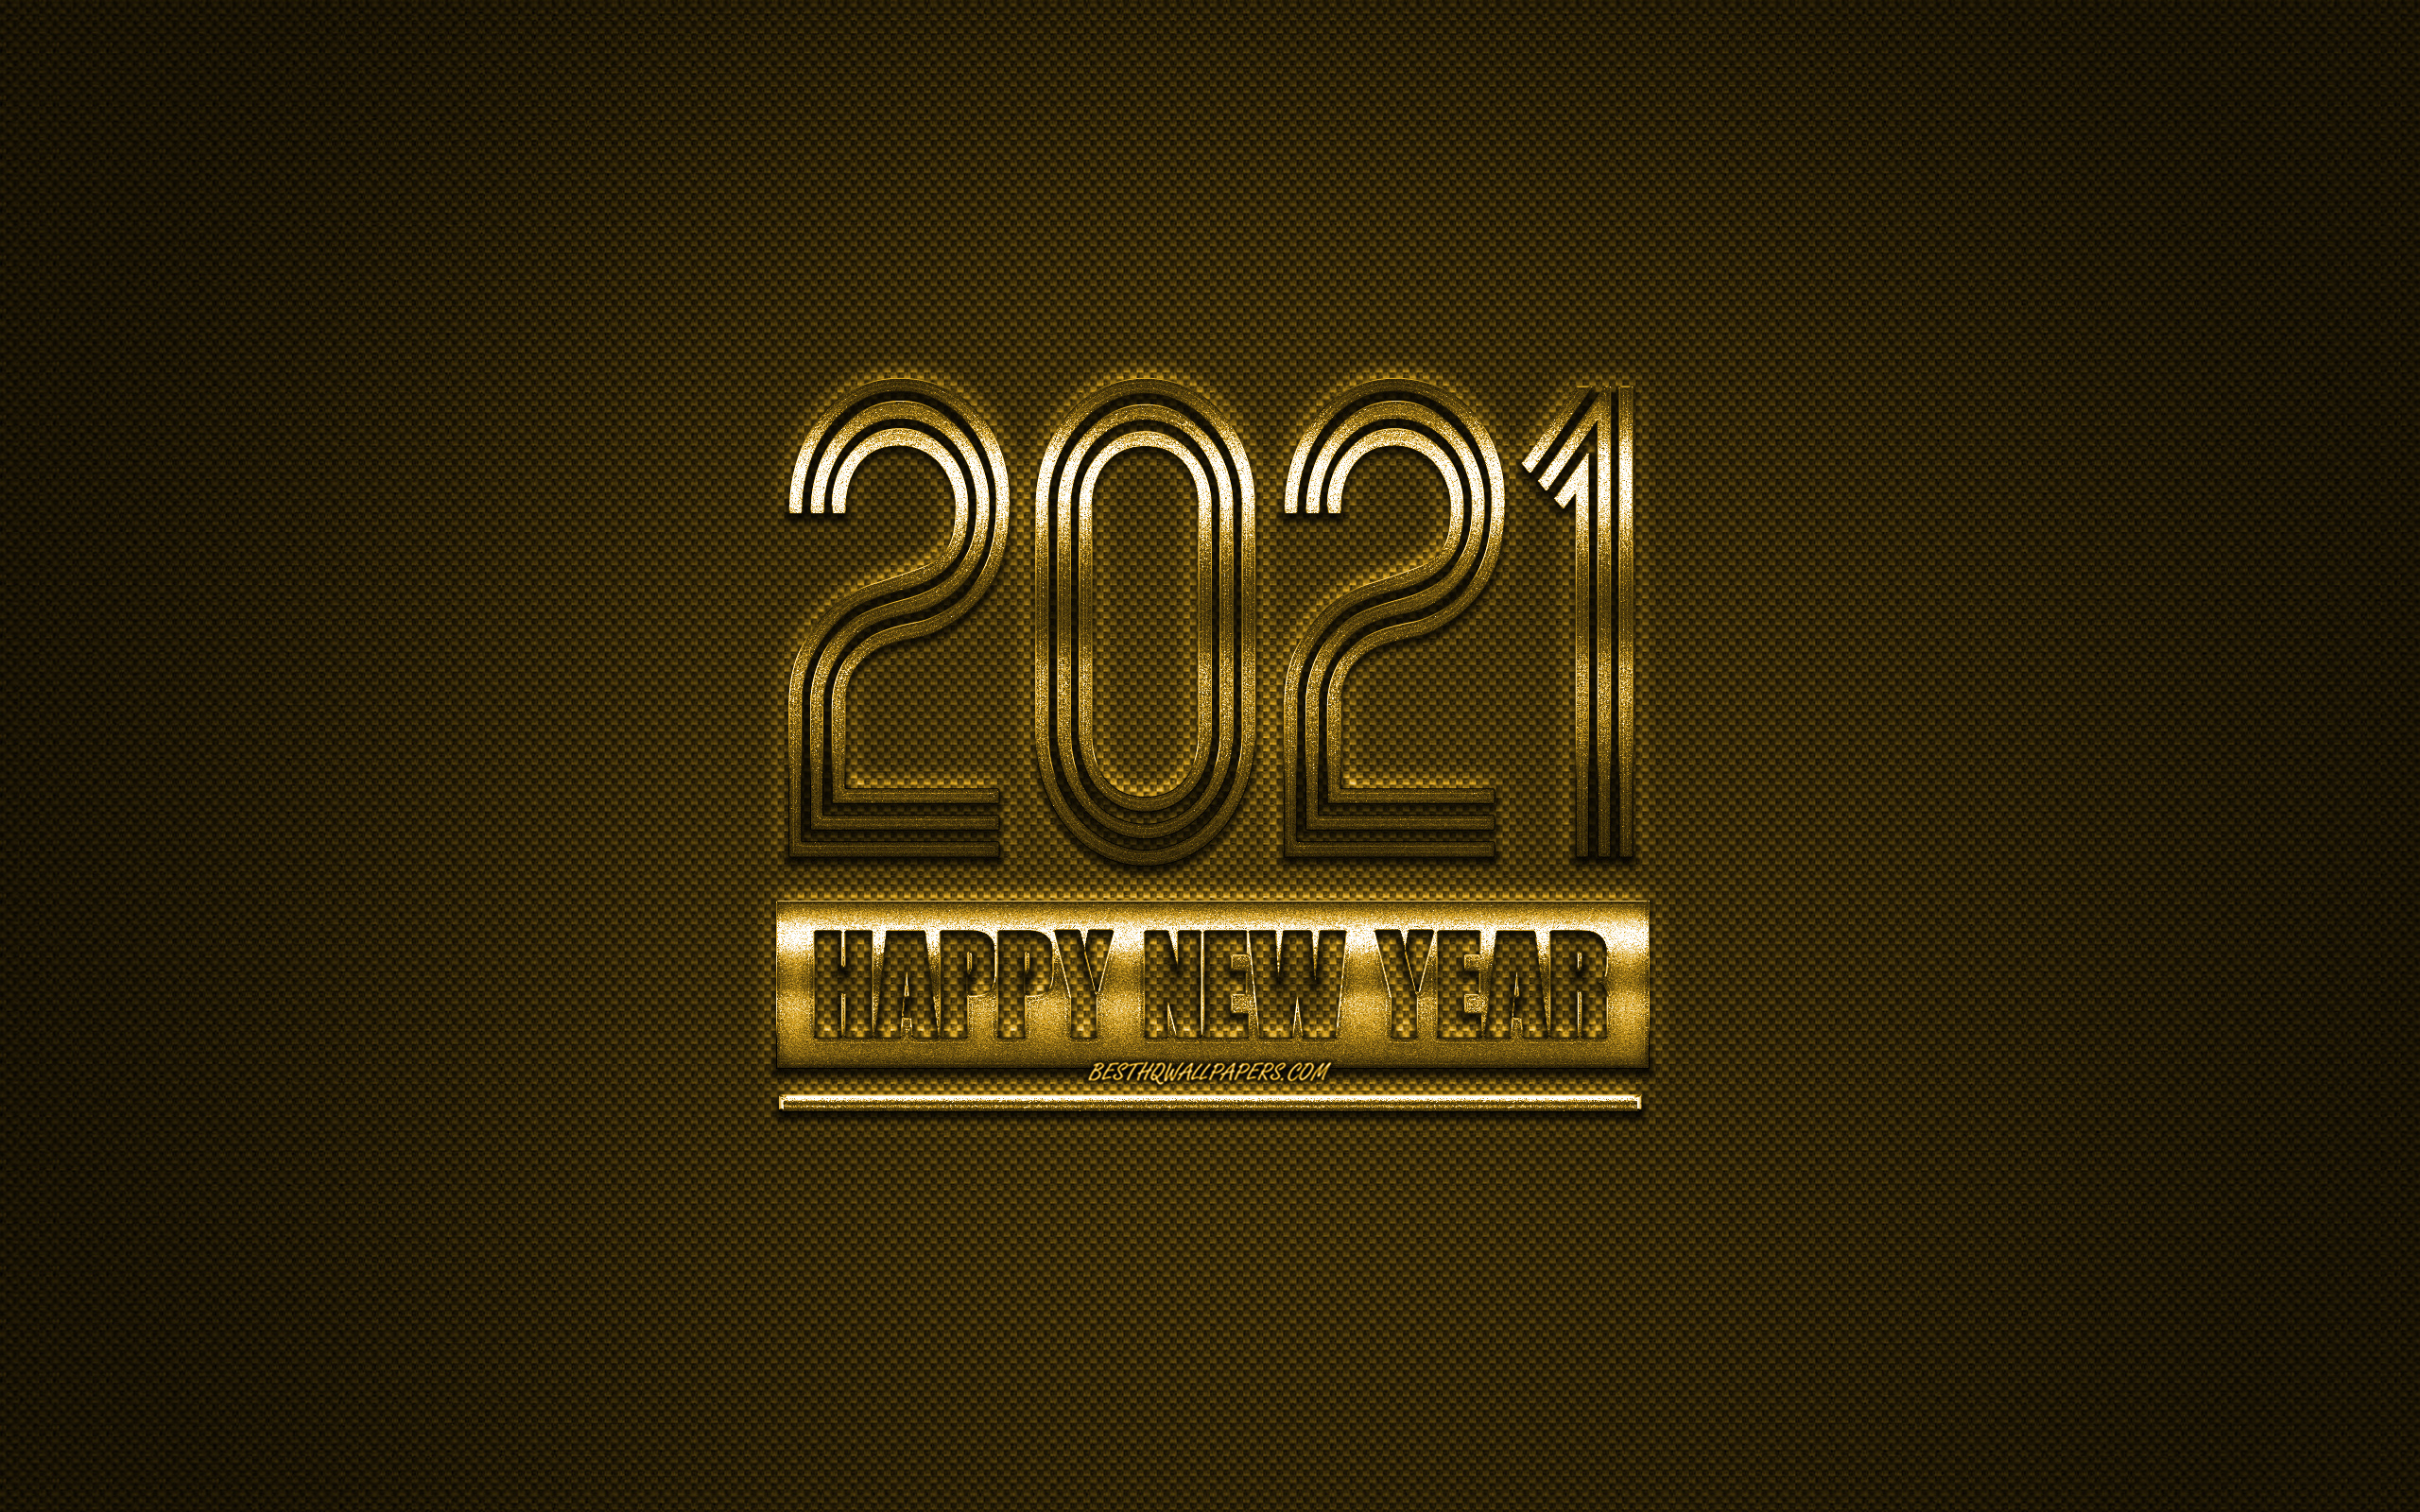 2021 New Year, 2021 Gold background, 2021 concepts, Happy New Year 2021, gold carbon texture, gold background